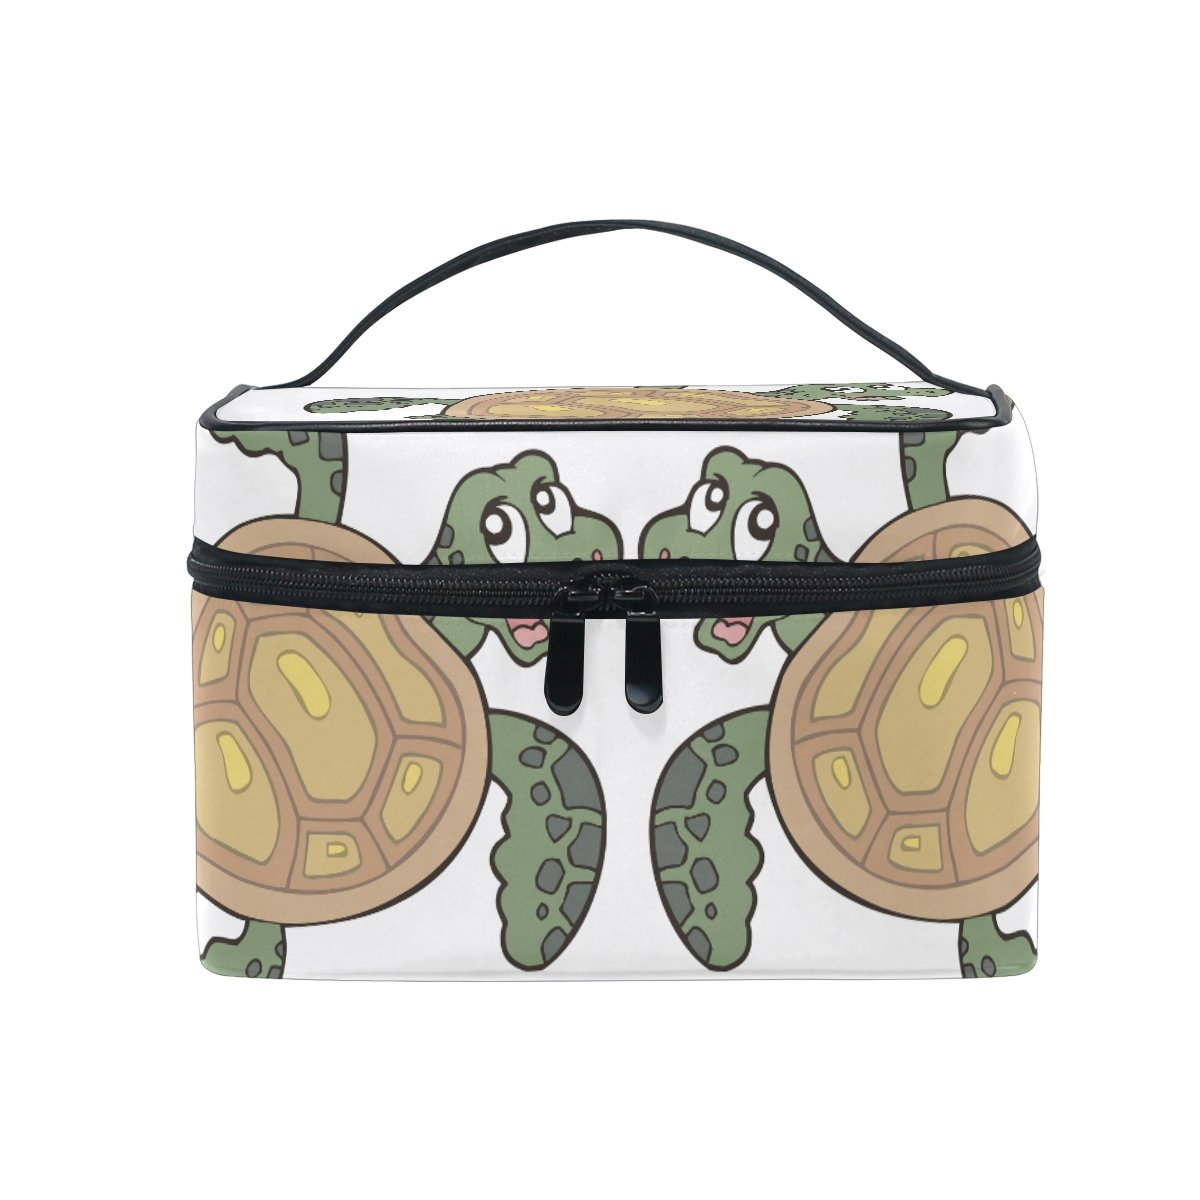 Makeup Bag Cartoon Turtles Travel Cosmetic Bags Organizer Train Case Toiletry Make Up Pouch